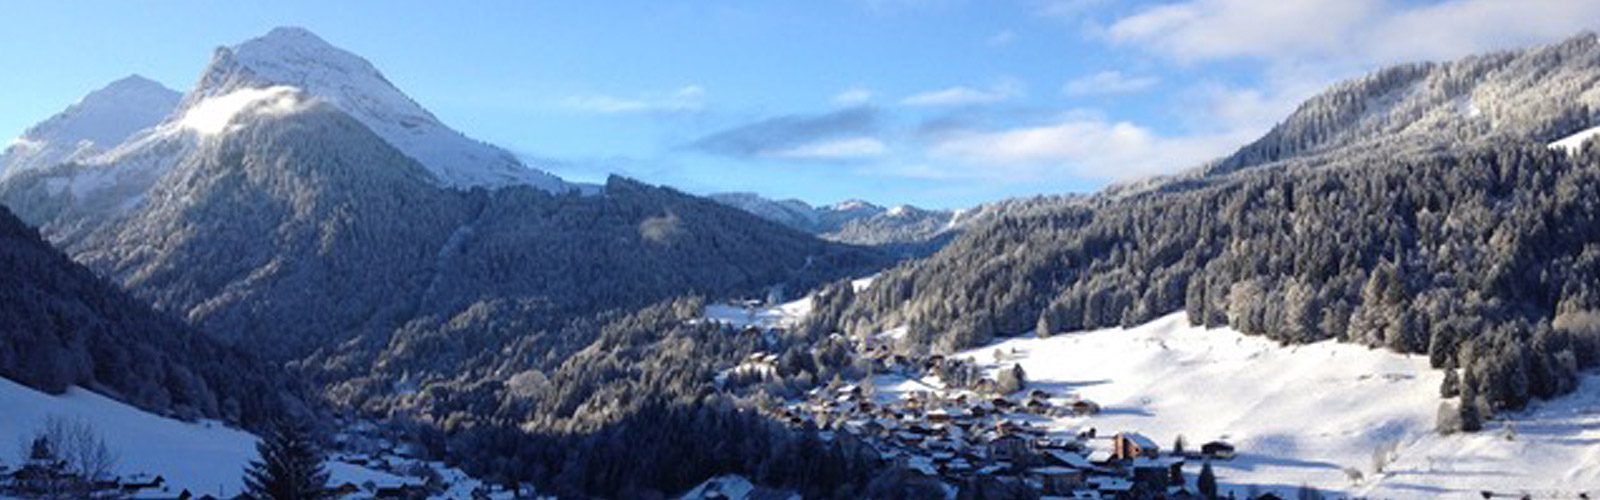 Morzine town down below